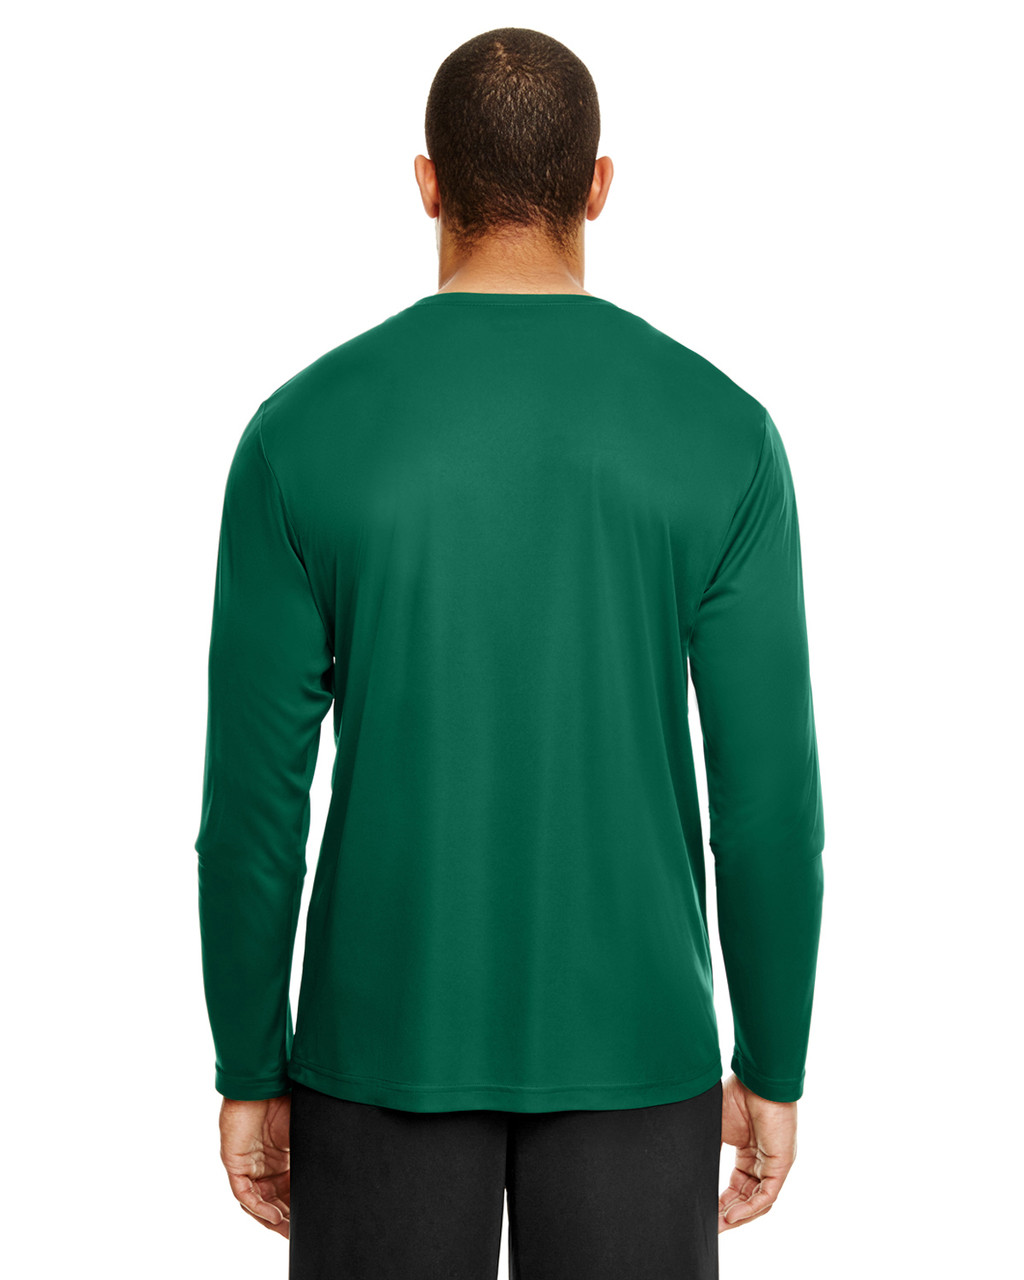 Sport Forest, Back - TT11L Team 365 Men's Zone Performance Long Sleeve T-Shirt | BlankClothing.ca